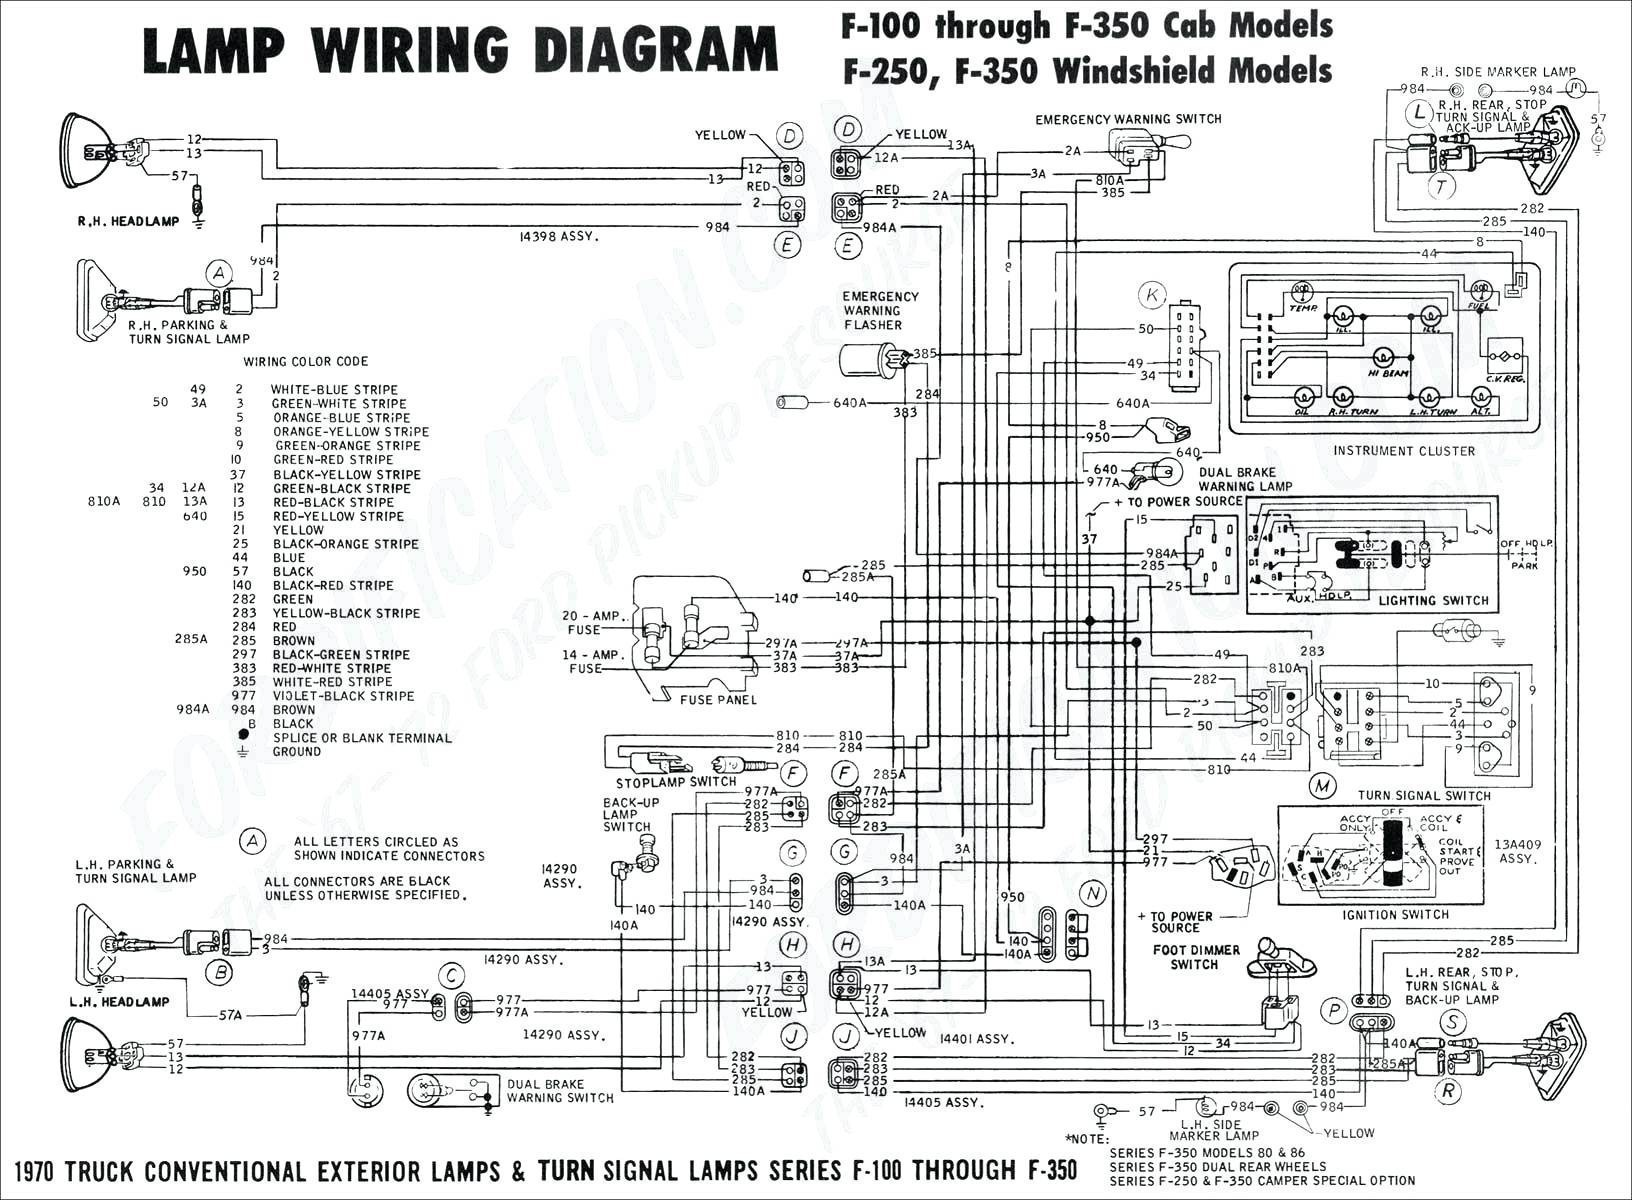 2005 ford Explorer 4 0 Engine Diagram 2005 ford F750 Wiring Diagrams Another Blog About Wiring Diagram • Of 2005 ford Explorer 4 0 Engine Diagram